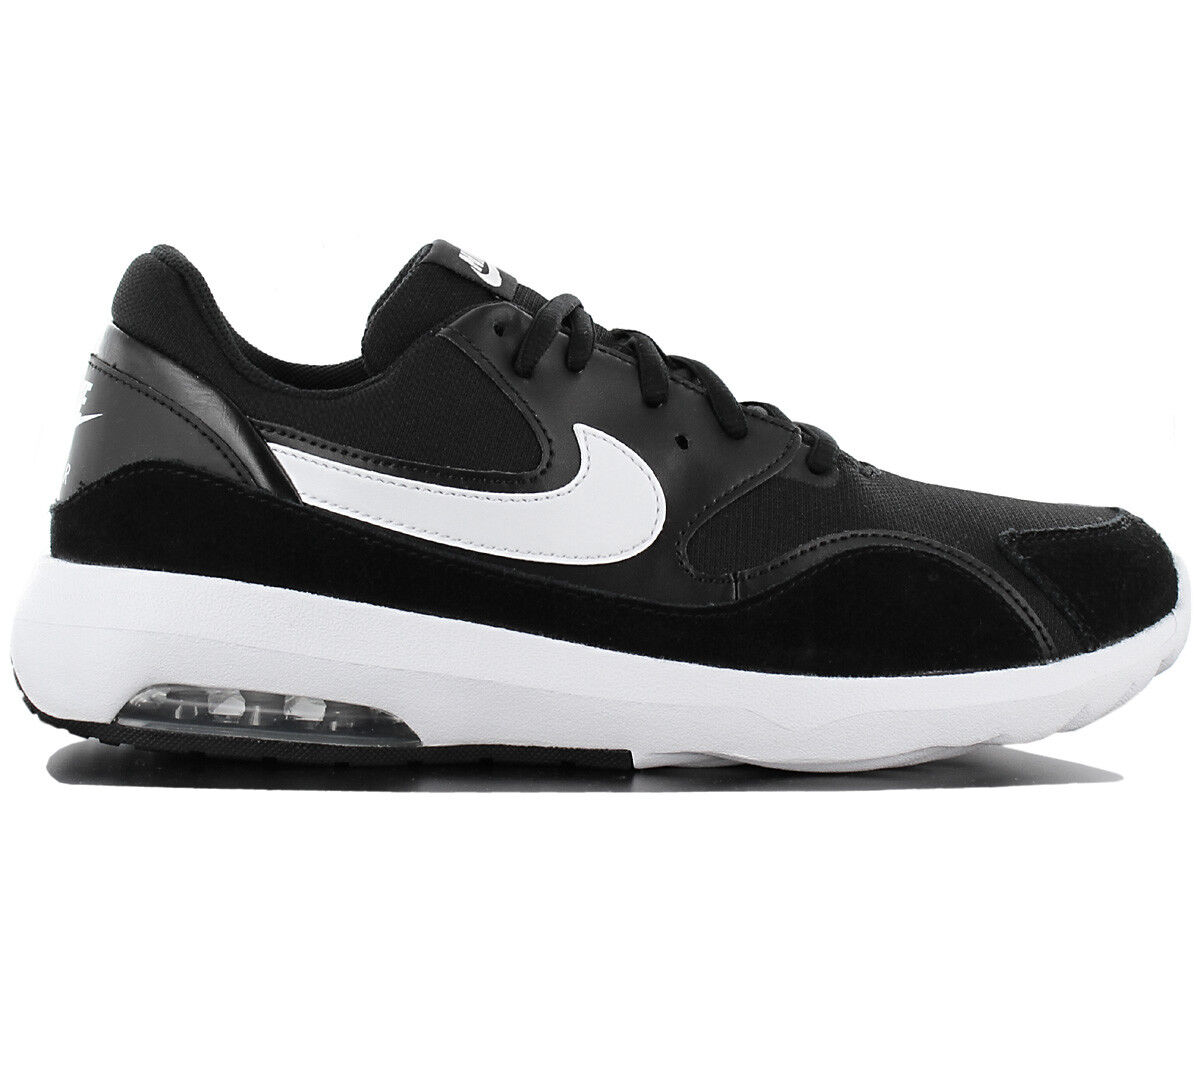 Nike Air Max Nostalgic Men's Sneakers shoes Black Classic 916781-002 New